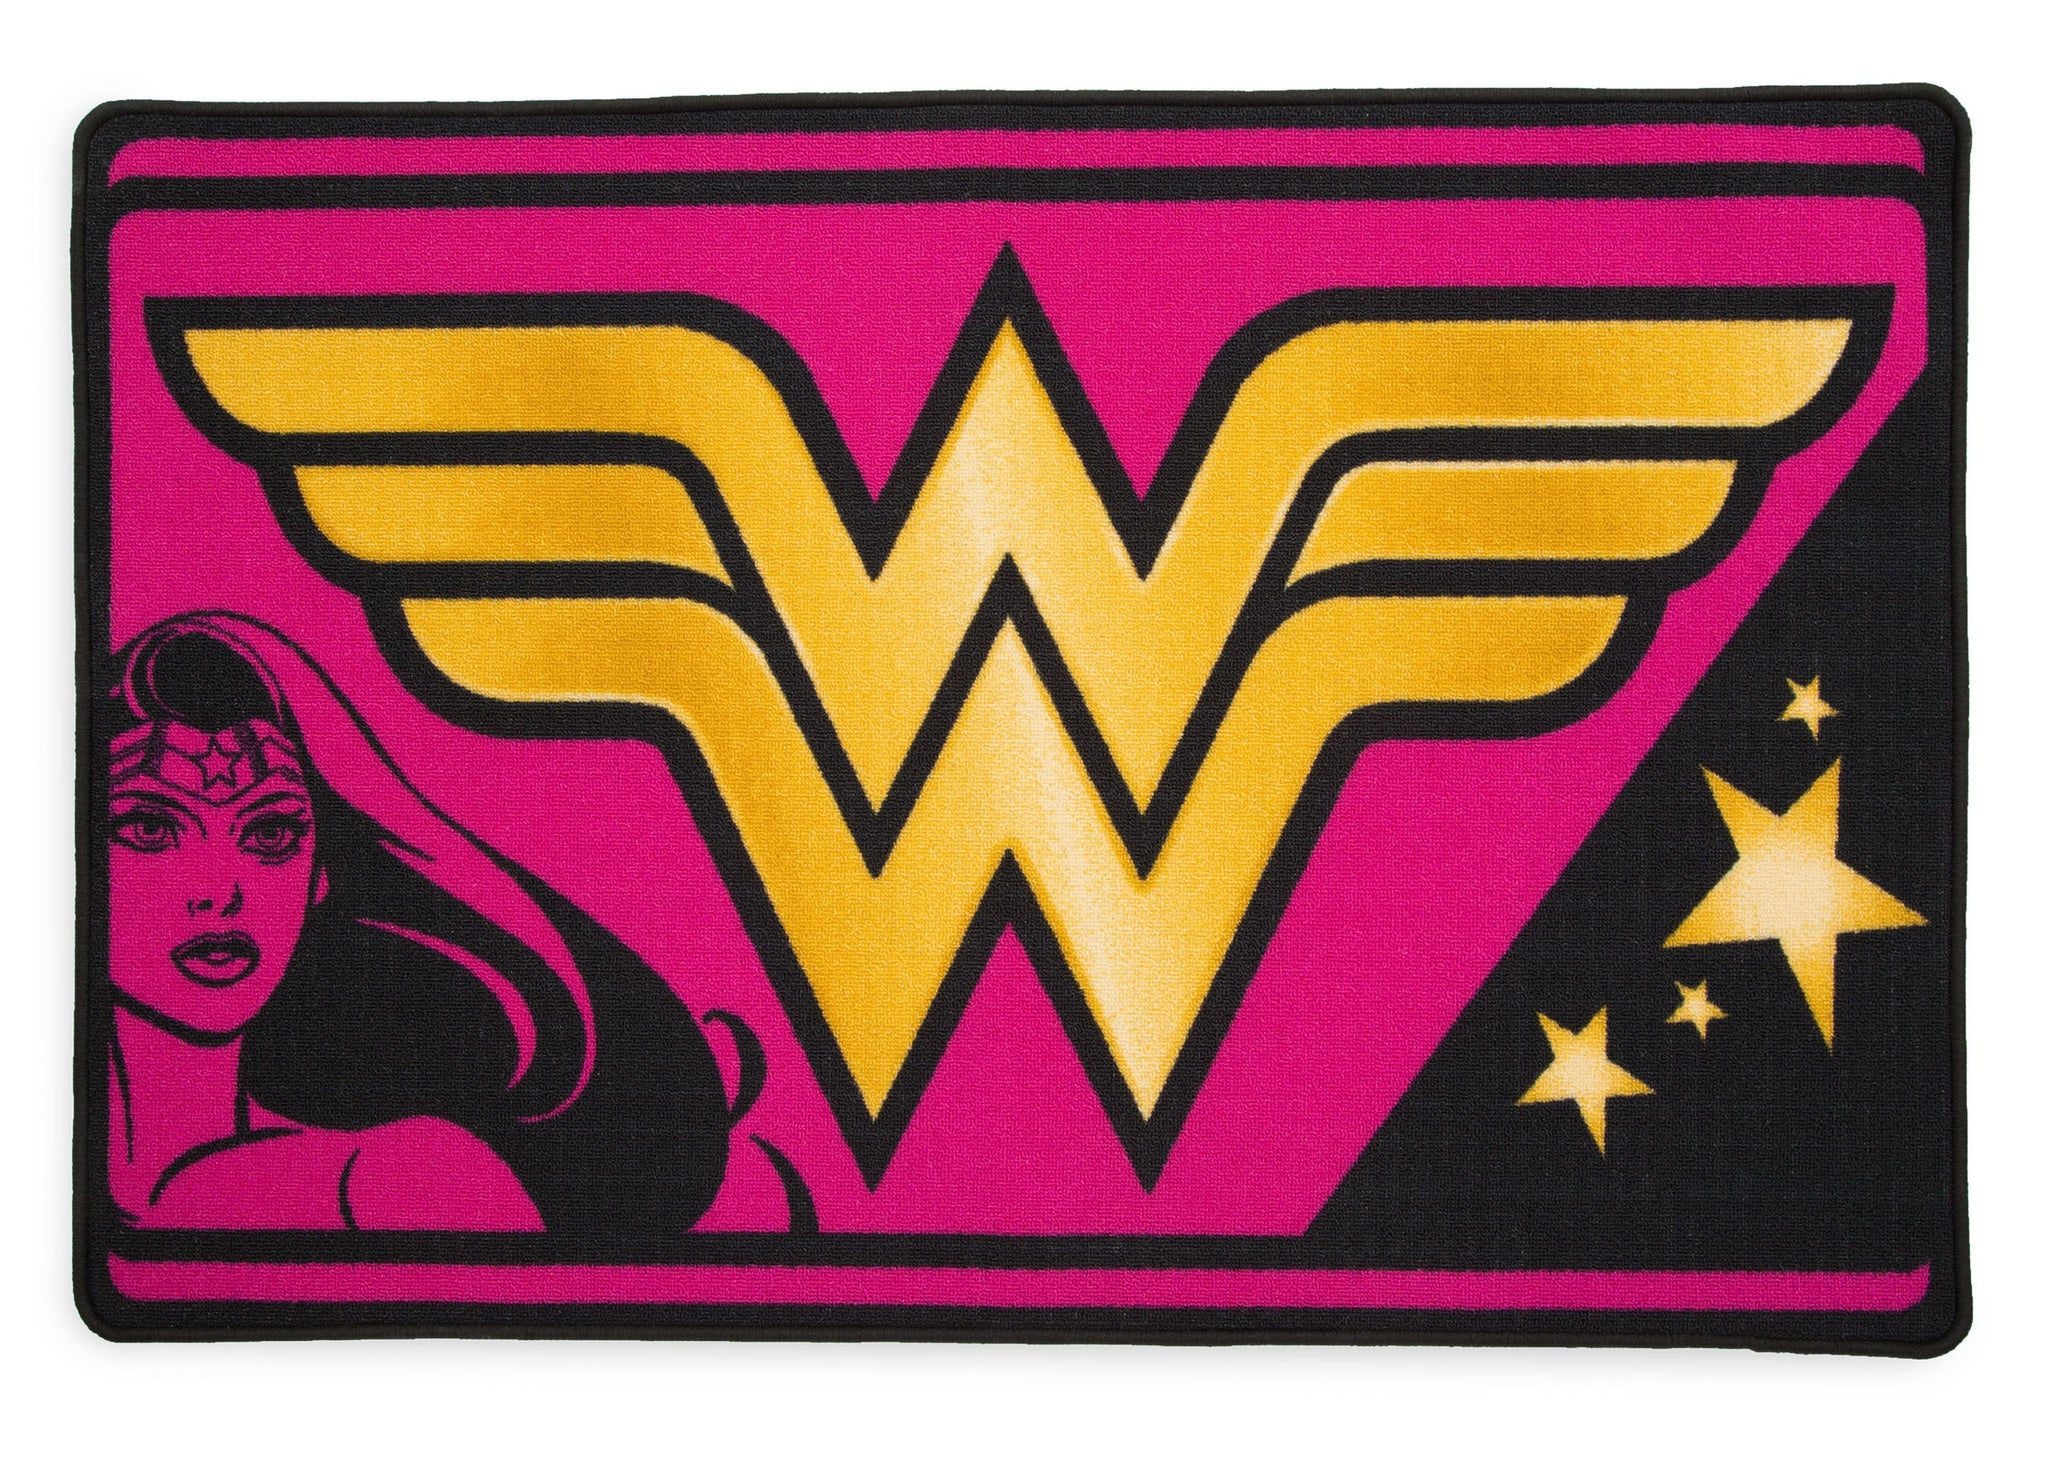 Delta Children Wonder Woman (1210) Soft Area Rug with Non-Slip Backing (TR80056WW), Silo, a2a